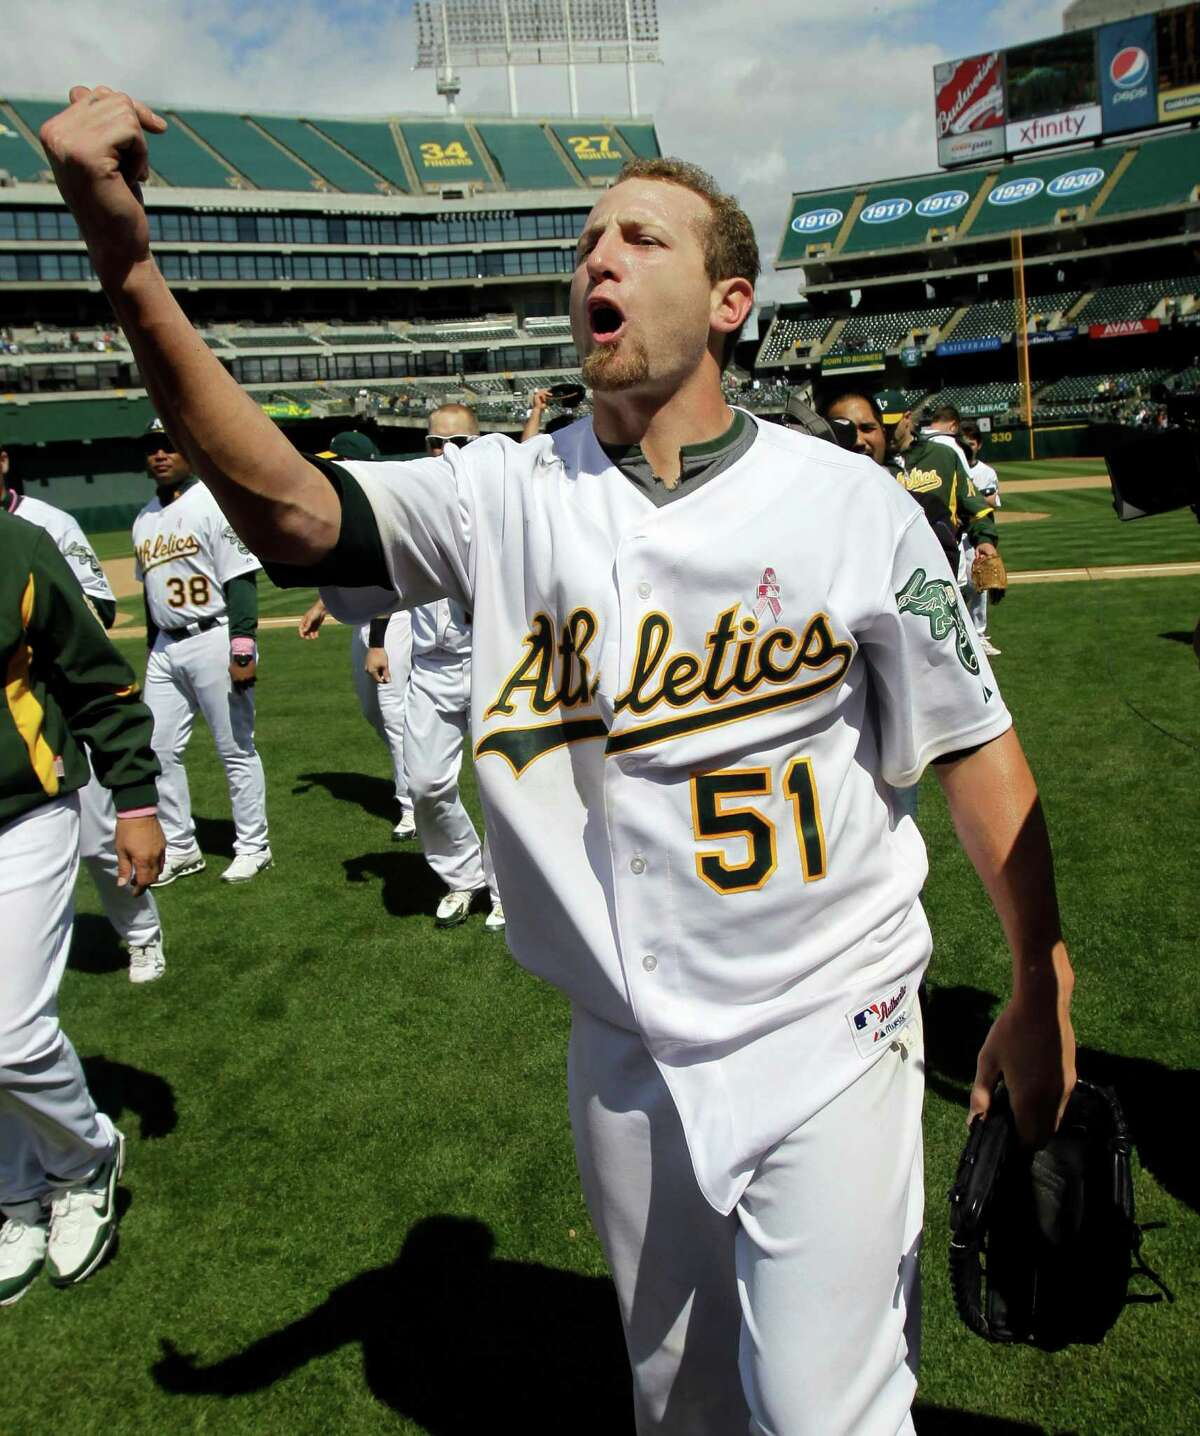 Oakland Athletics starting pitcher Dallas Braden celebrates after throwing a perfect game against the Tampa Bay Rays during a baseball game in Oakland, Calif. Sunday, May 9, 2010. Braden pitched the 19th perfect game in major league history, a dazzling performance for the Athletics in a 4-0 victory over the Tampa Bay Rays on Sunday. (AP Photo/Marcio Jose Sanchez)